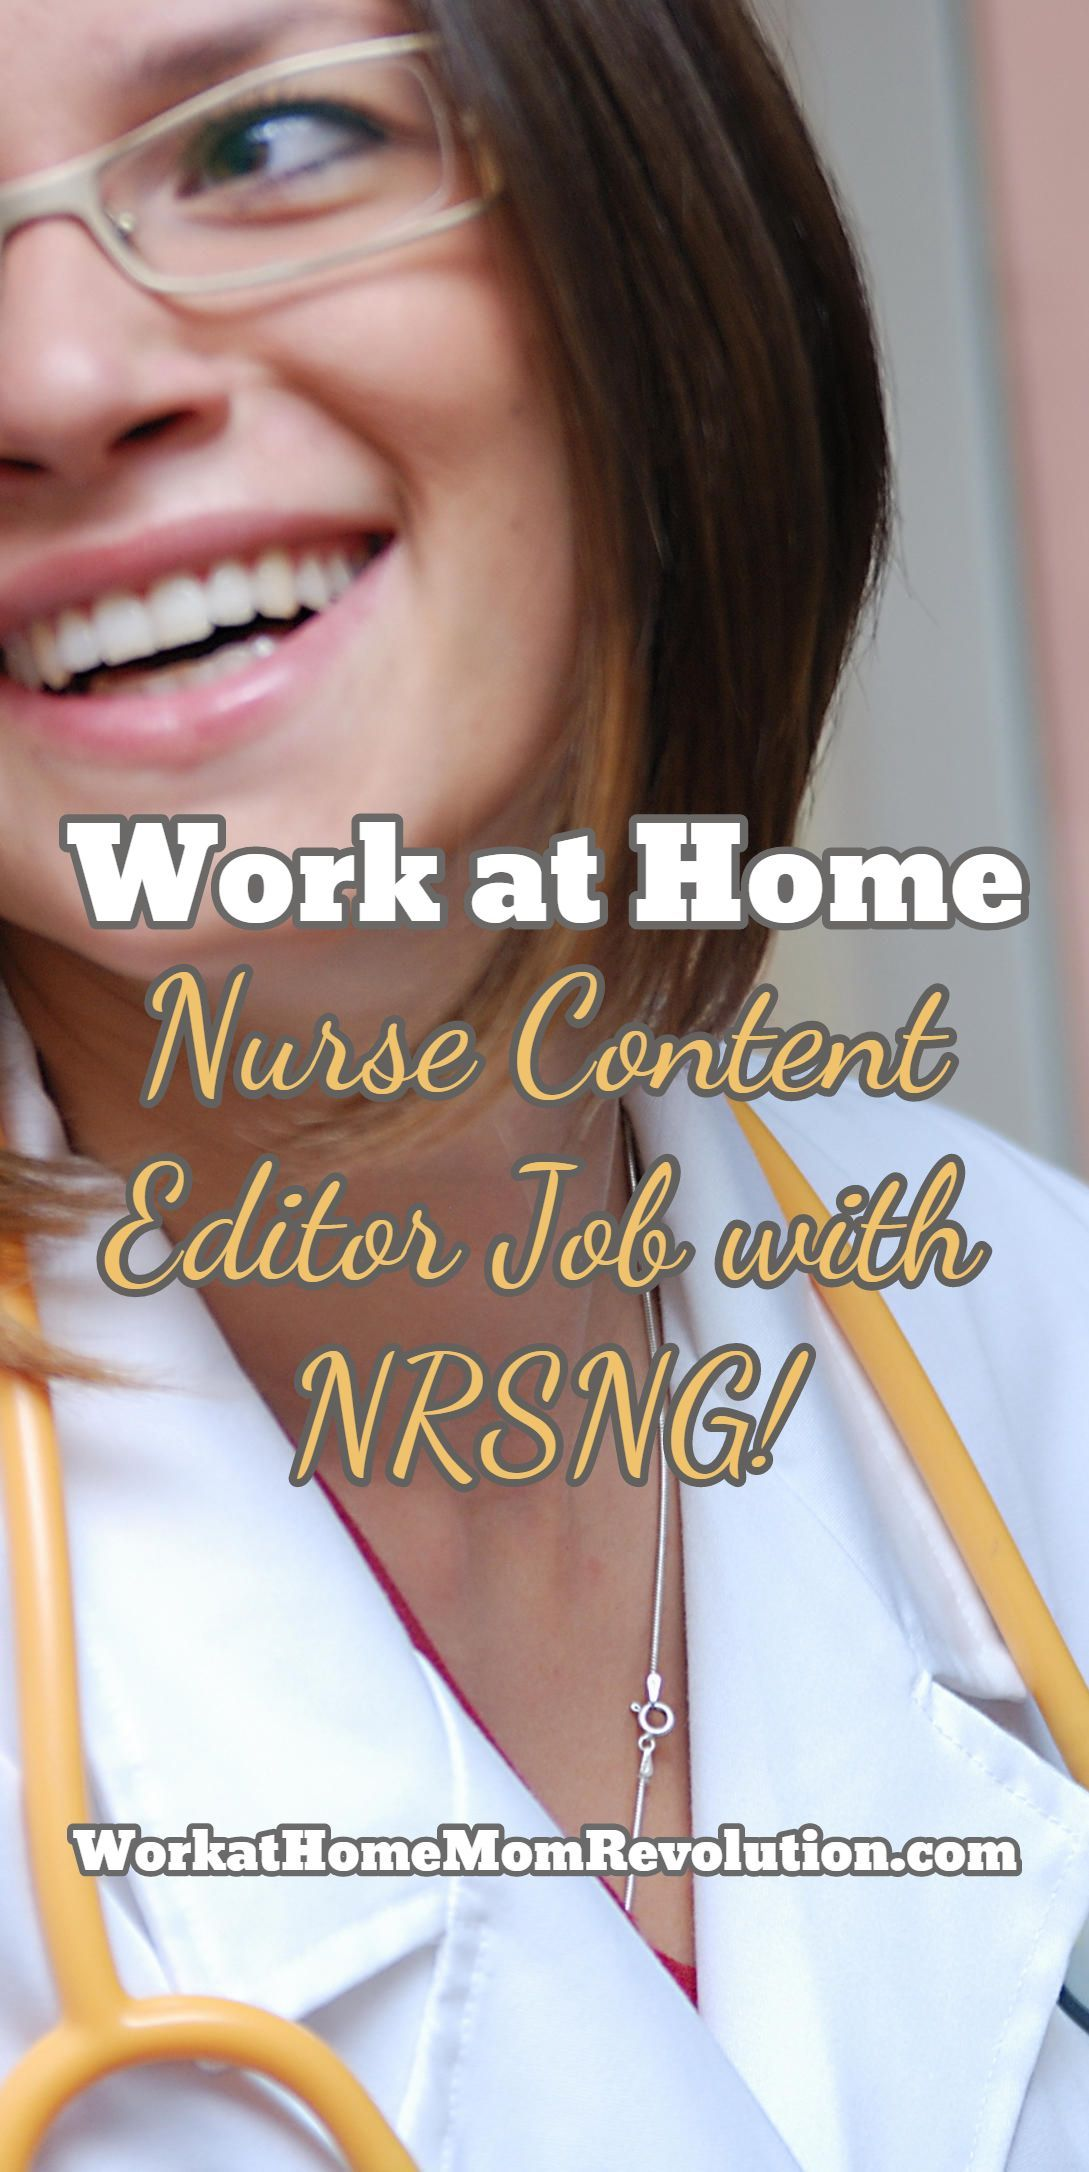 Work at Home Nurse Content Editor Job with NRSNG